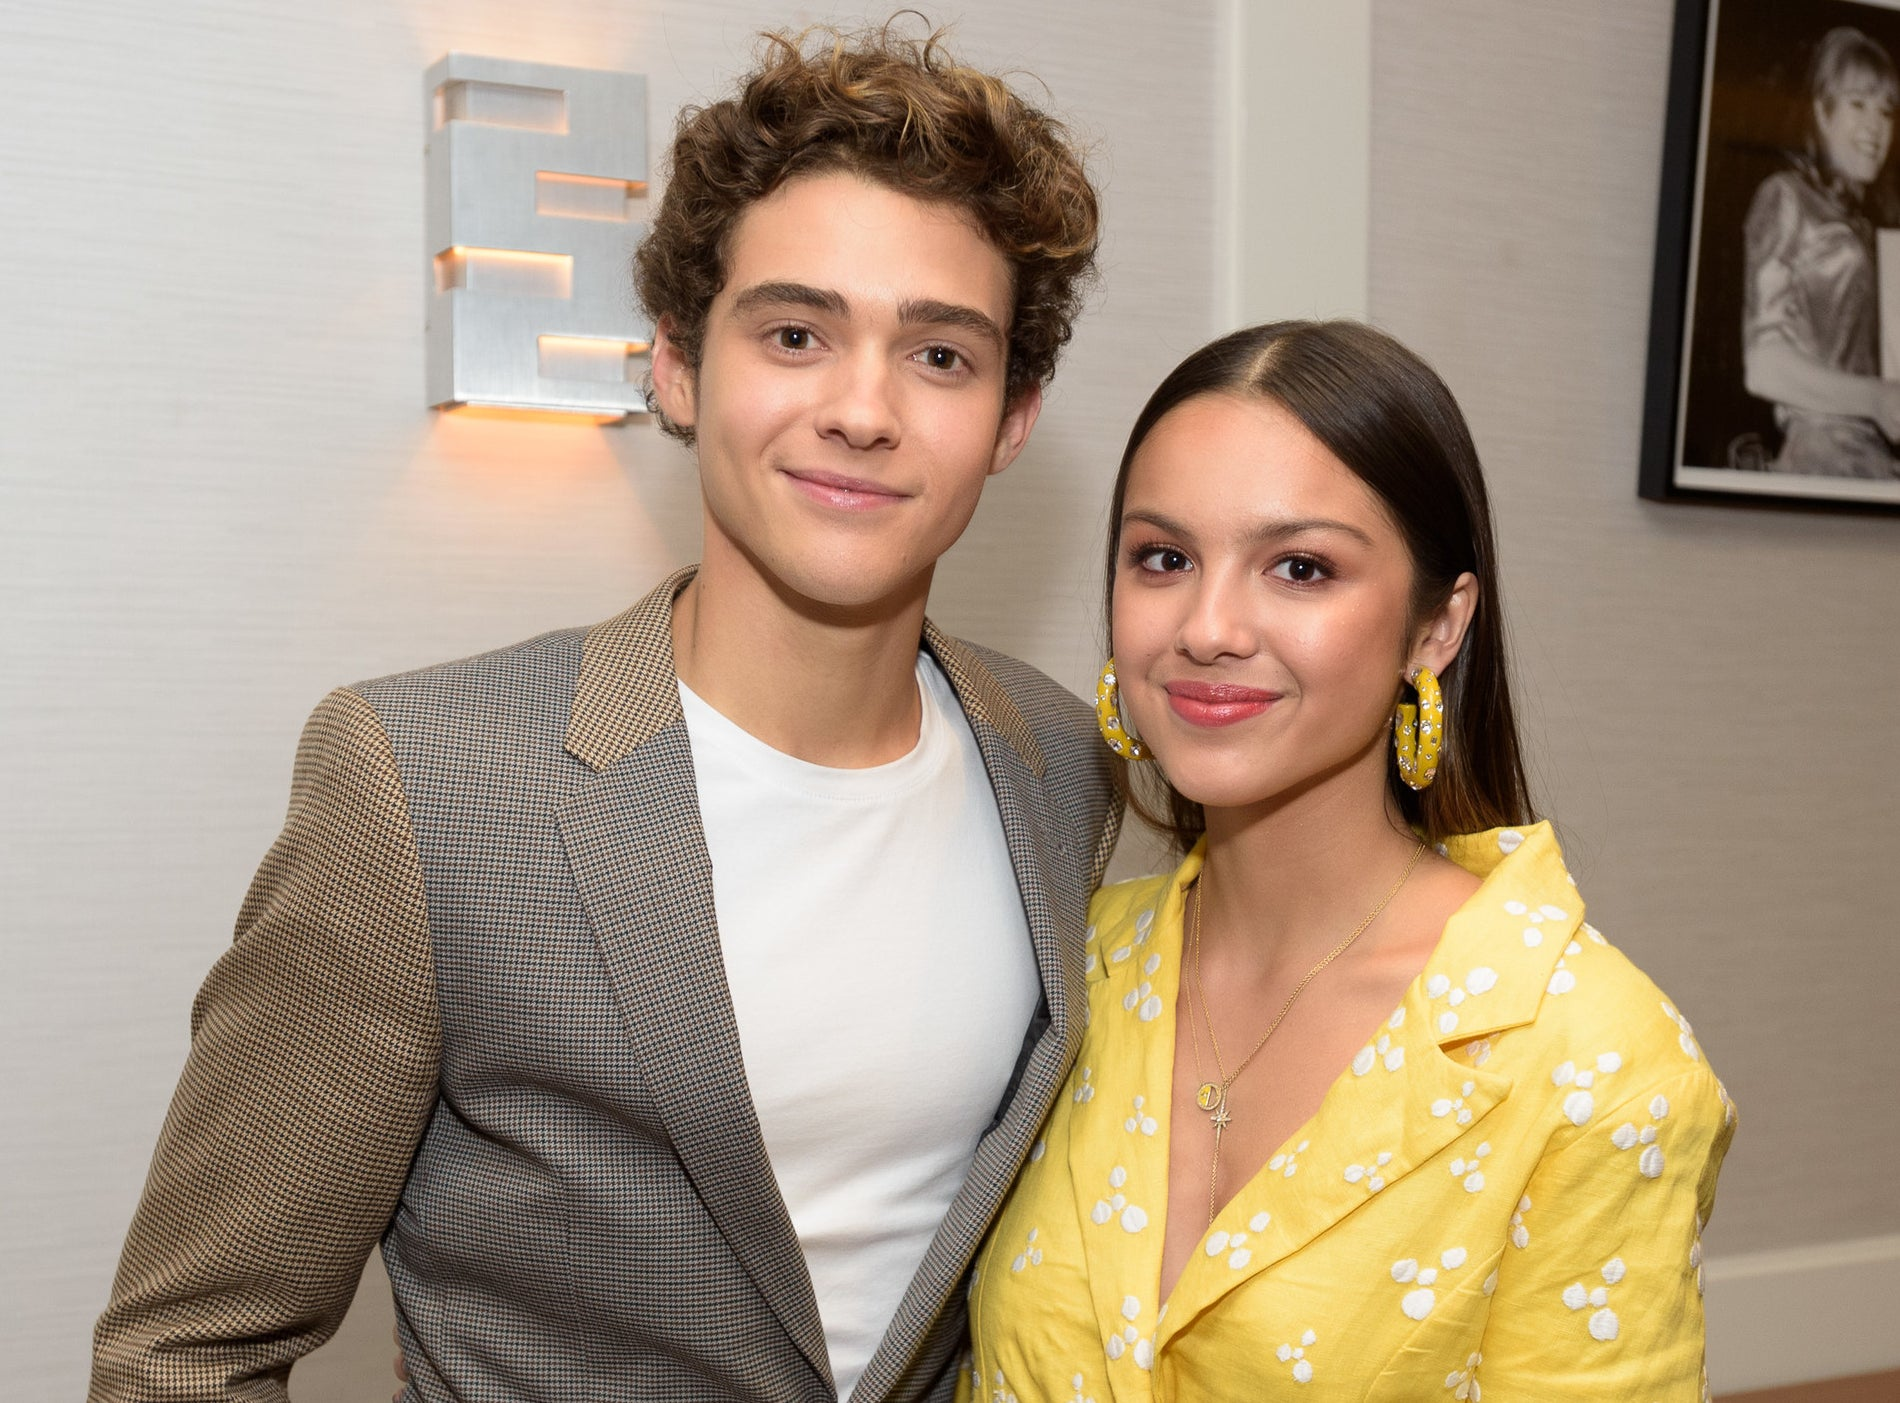 Joshua and Olivia pose together at an event